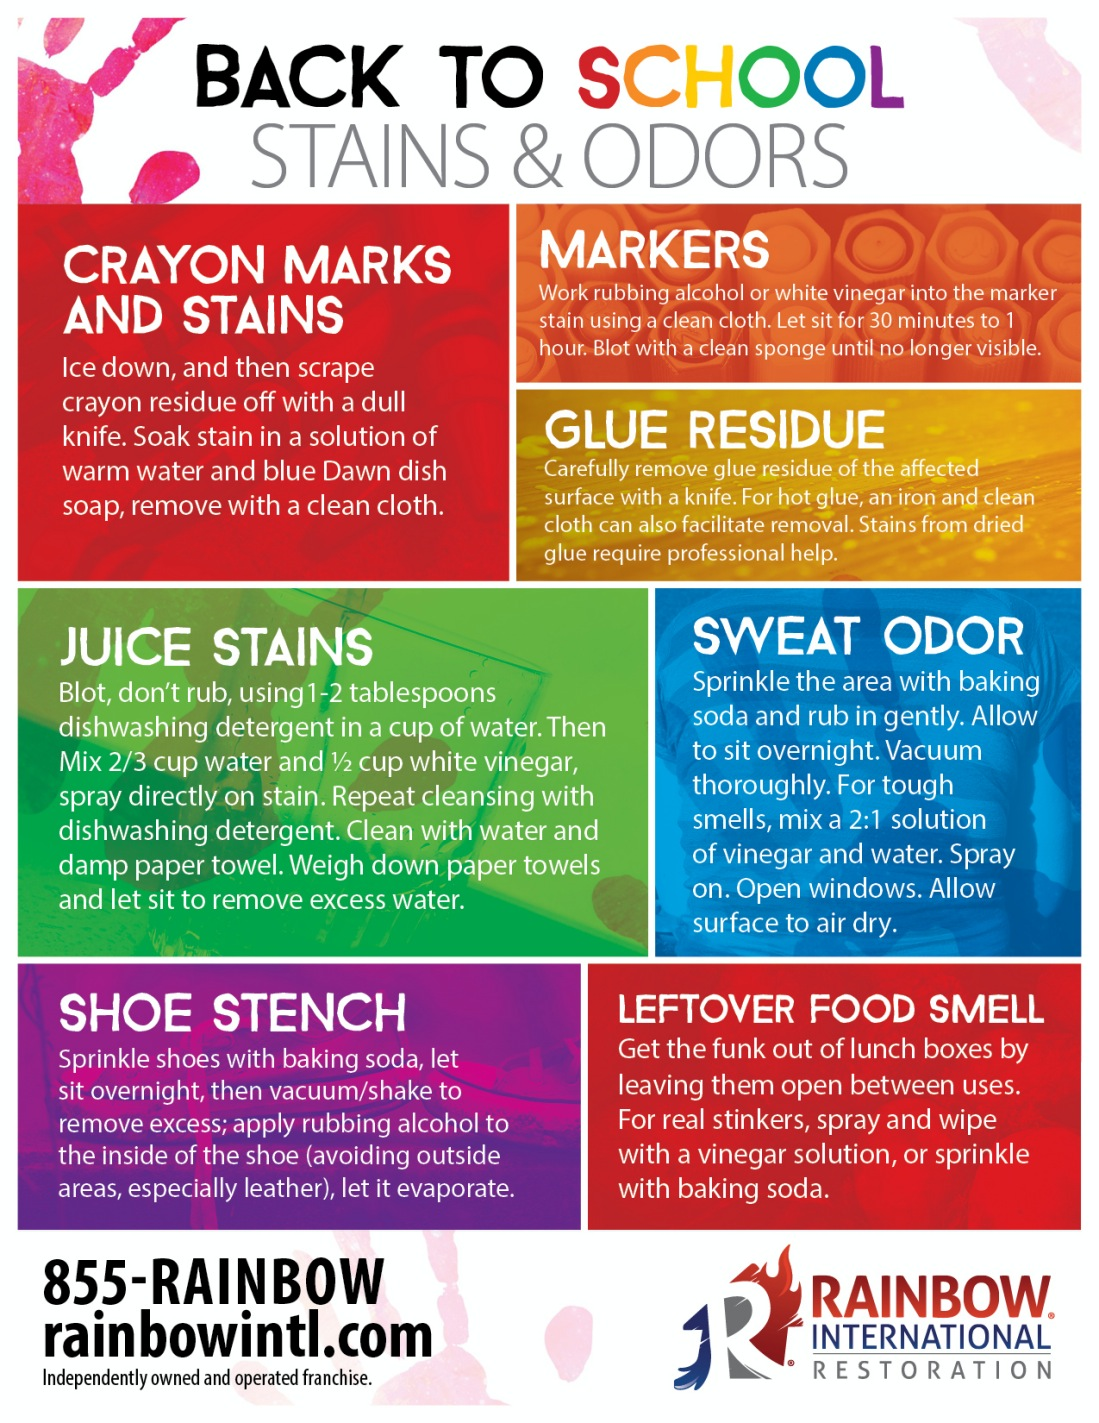 Infographic about Back to School Stains